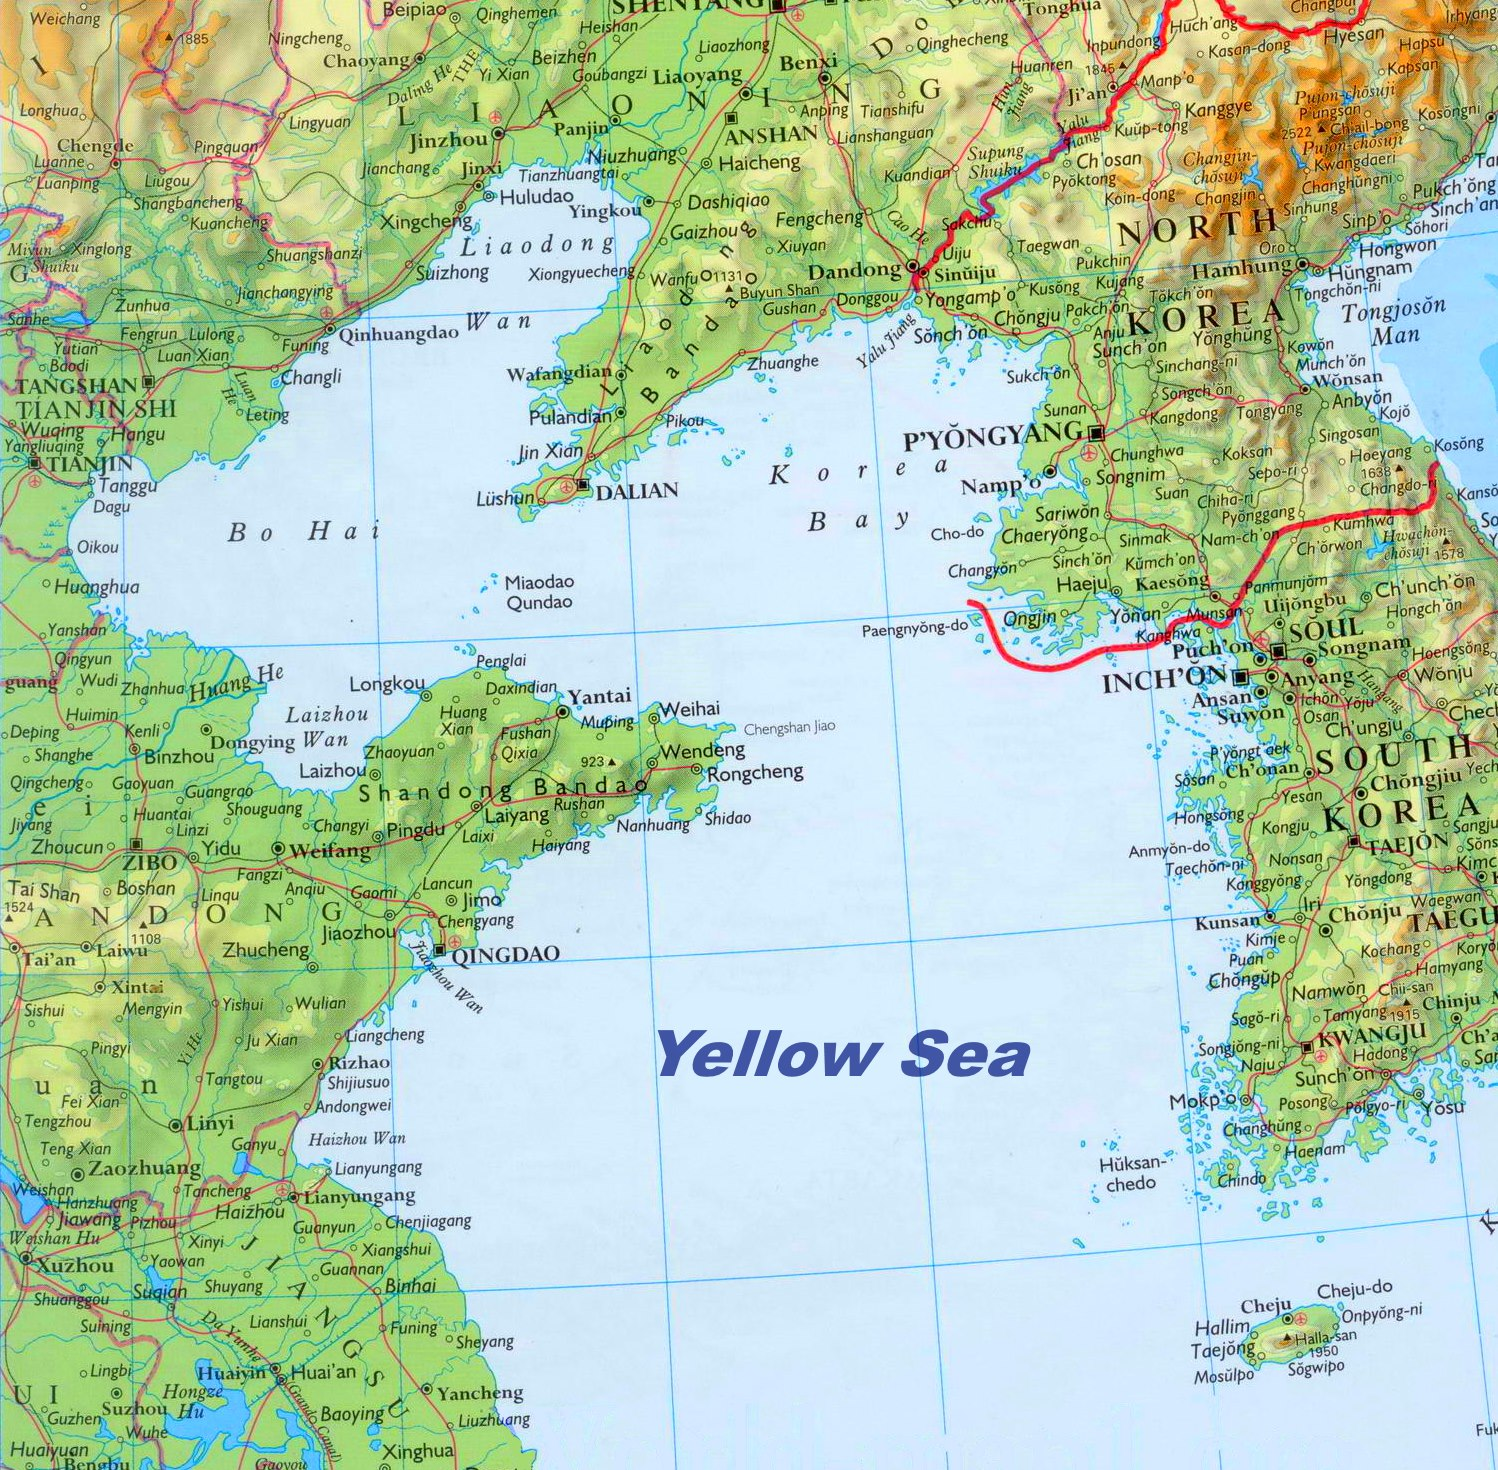 Large Detailed Map Of Yellow Sea - Yantai map